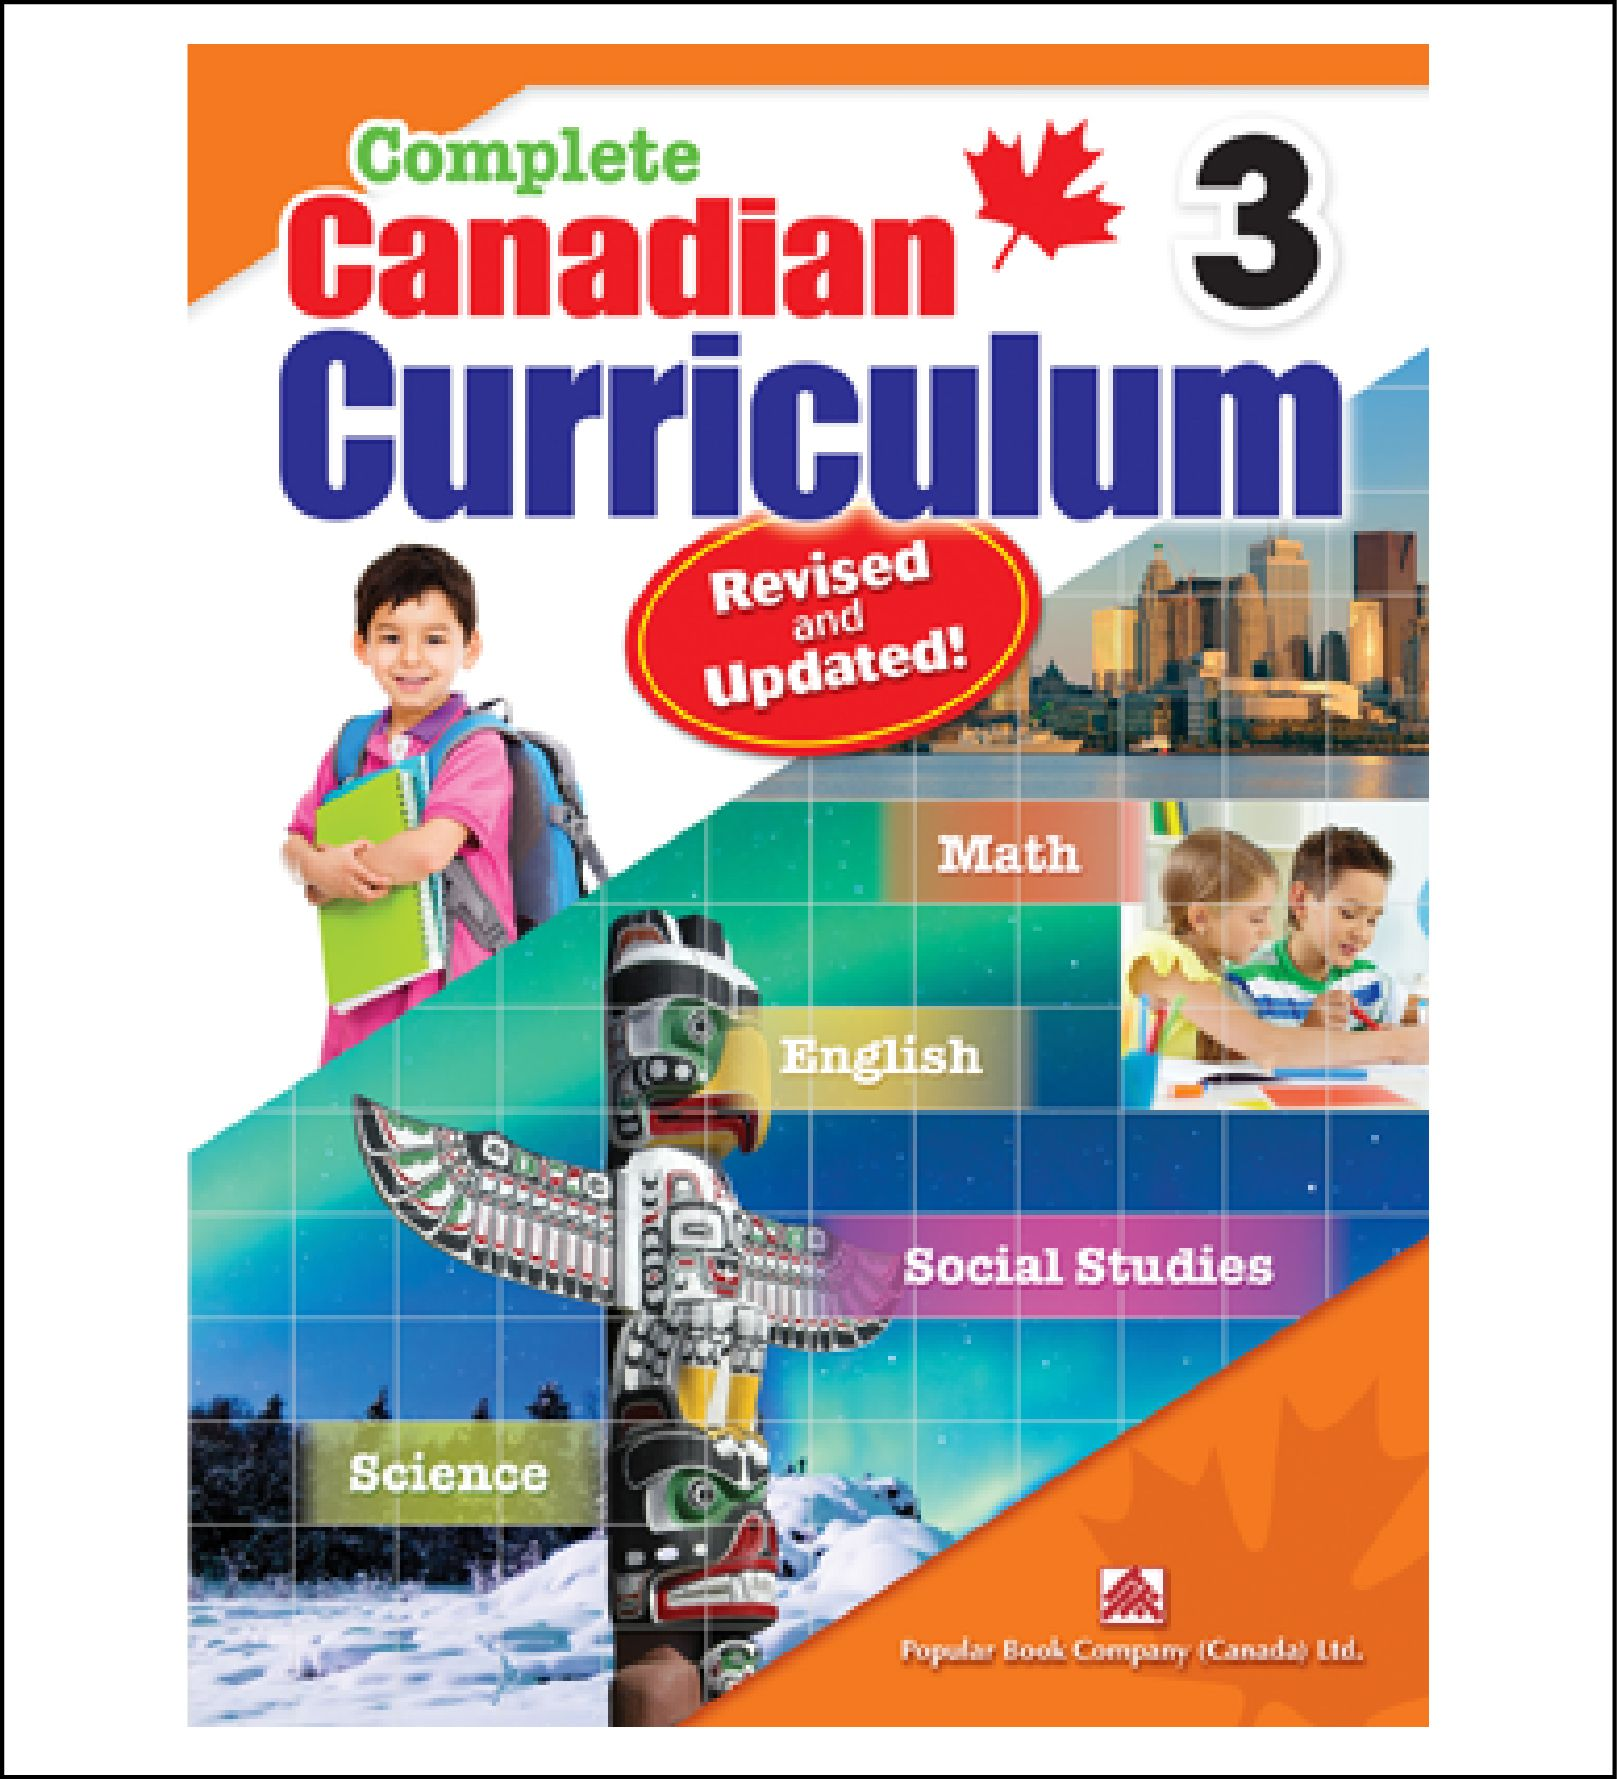 Workbook For Kids Complete Canadian Curriculum Grade 3 By Popular Book Company 19 95 Curriculum Social Studies Worksheets Subject And Predicate [ 1779 x 1617 Pixel ]